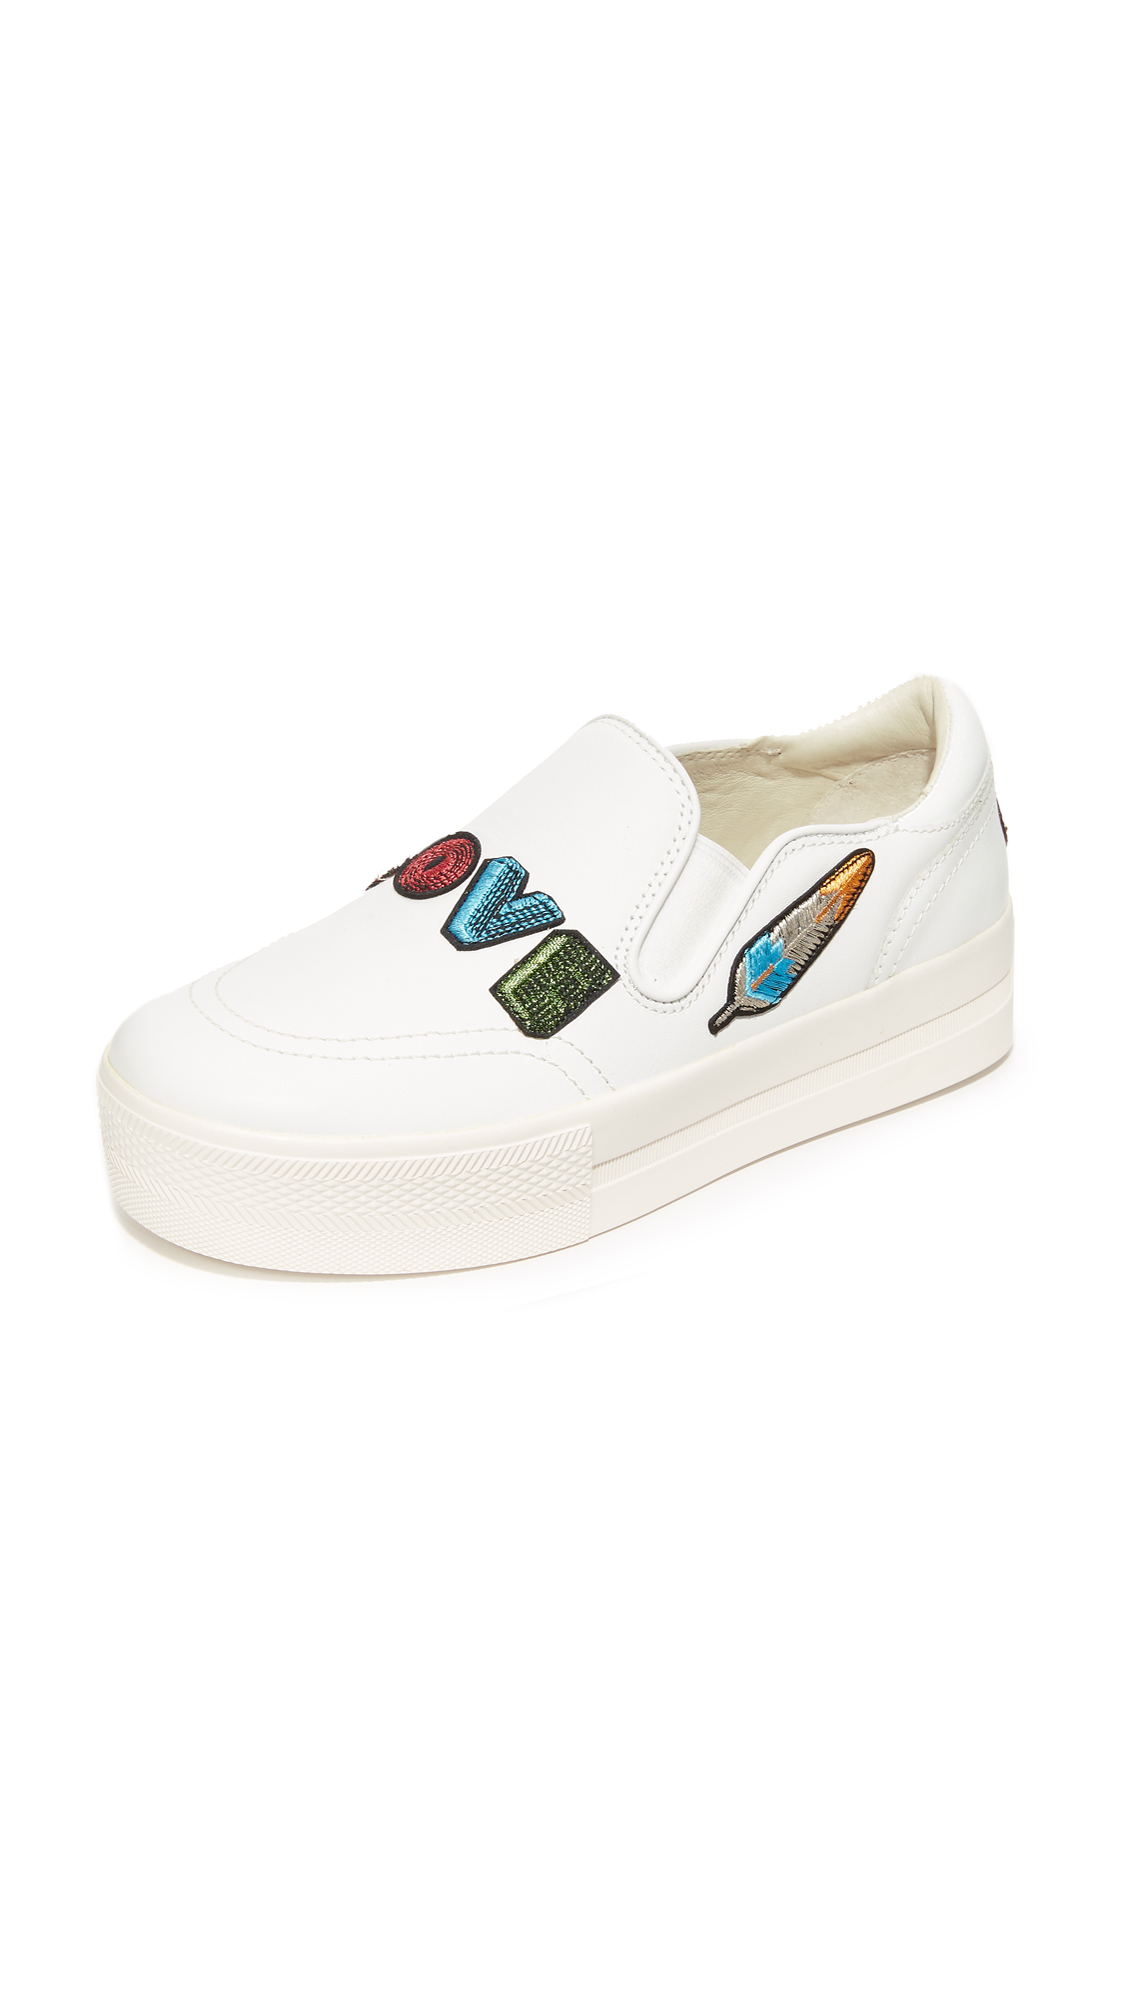 Ash Jess Platform Slip On Sneakers - White/White at Shopbop